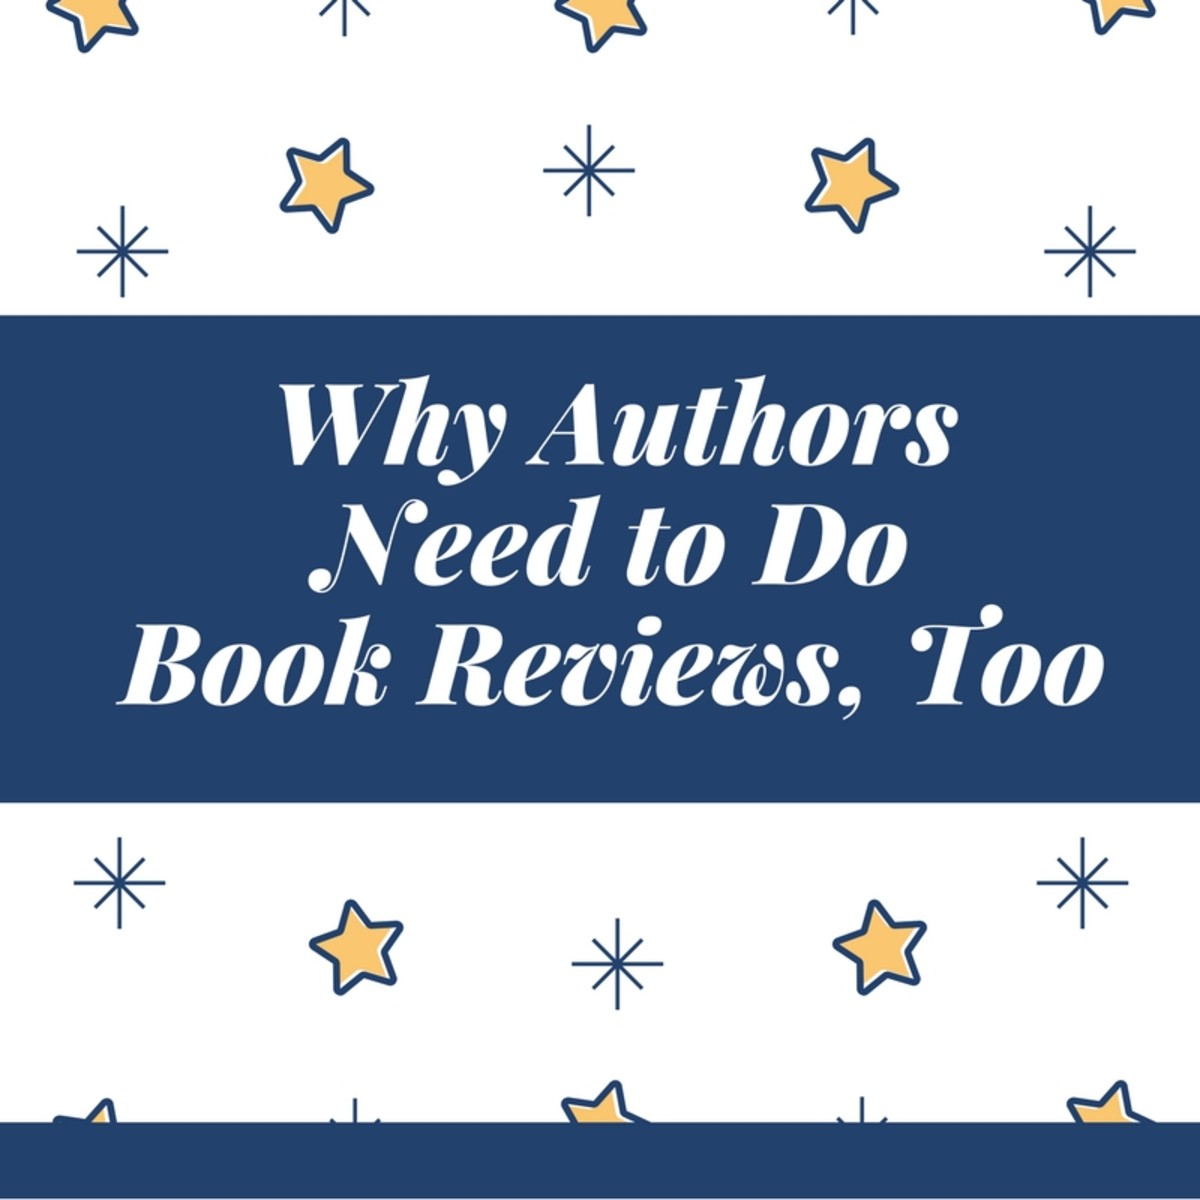 Book Reviews: Why Authors Need to Do Them